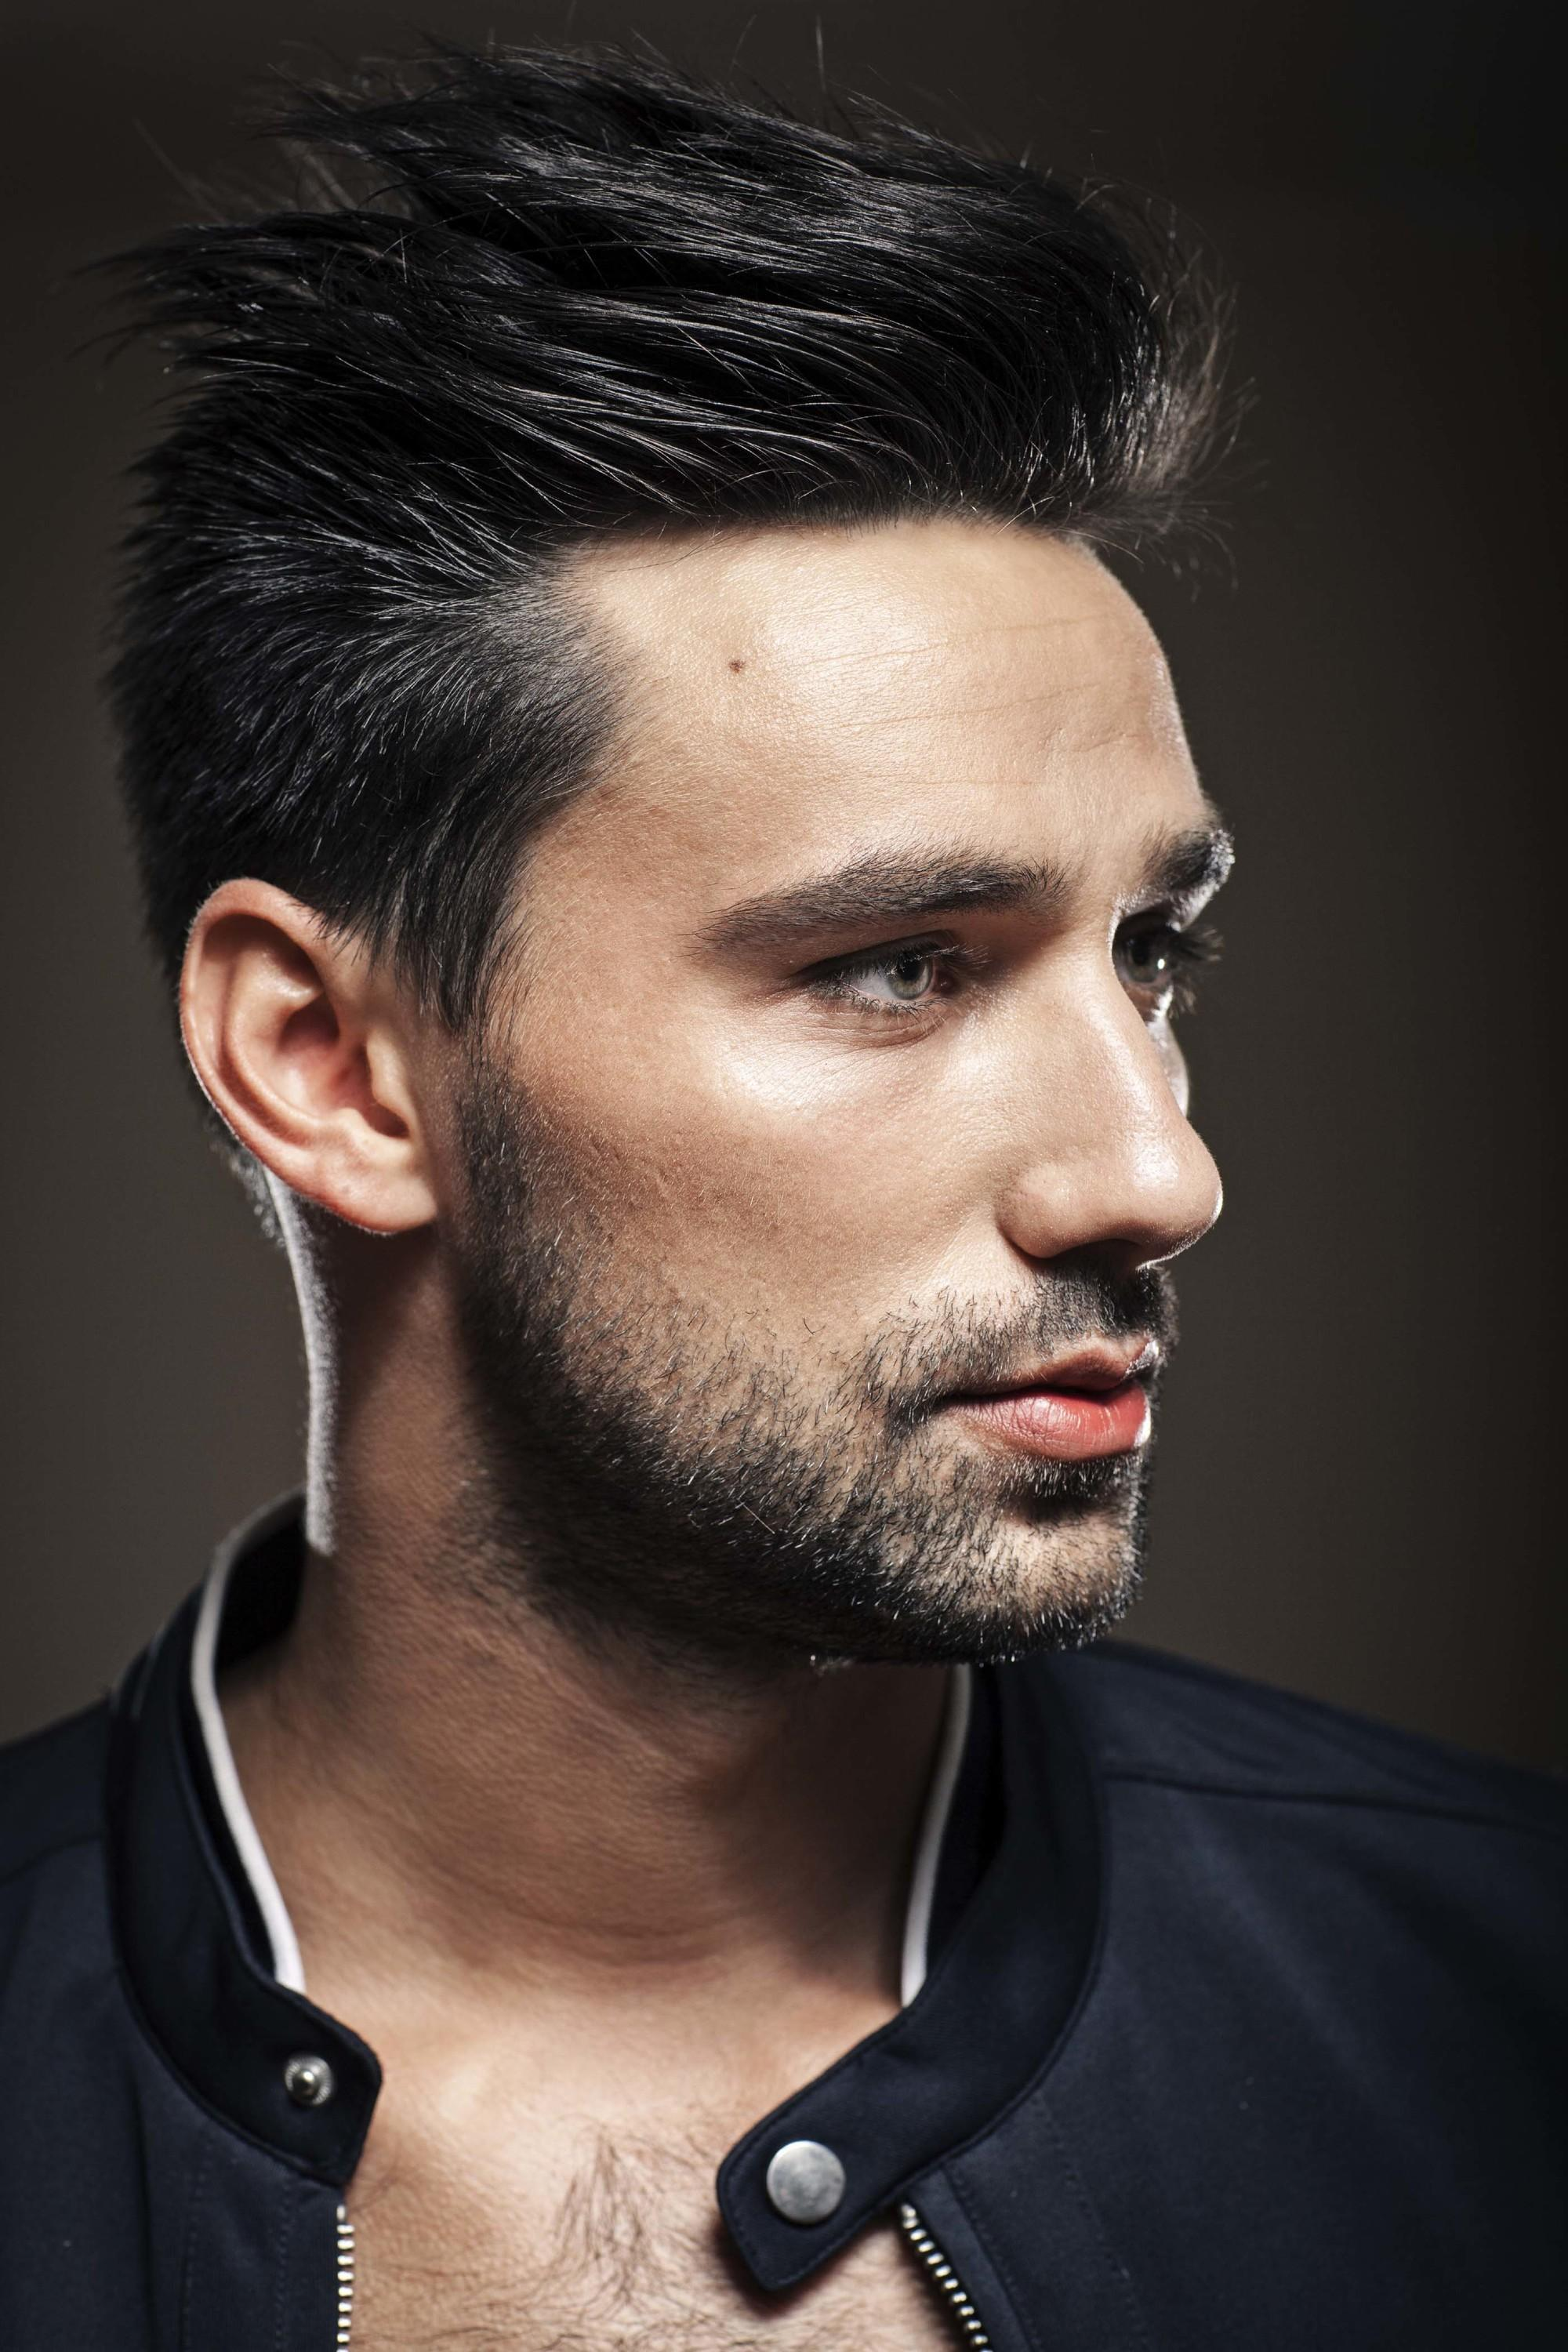 Some Of The Best Quiff And Combover Styles For Men